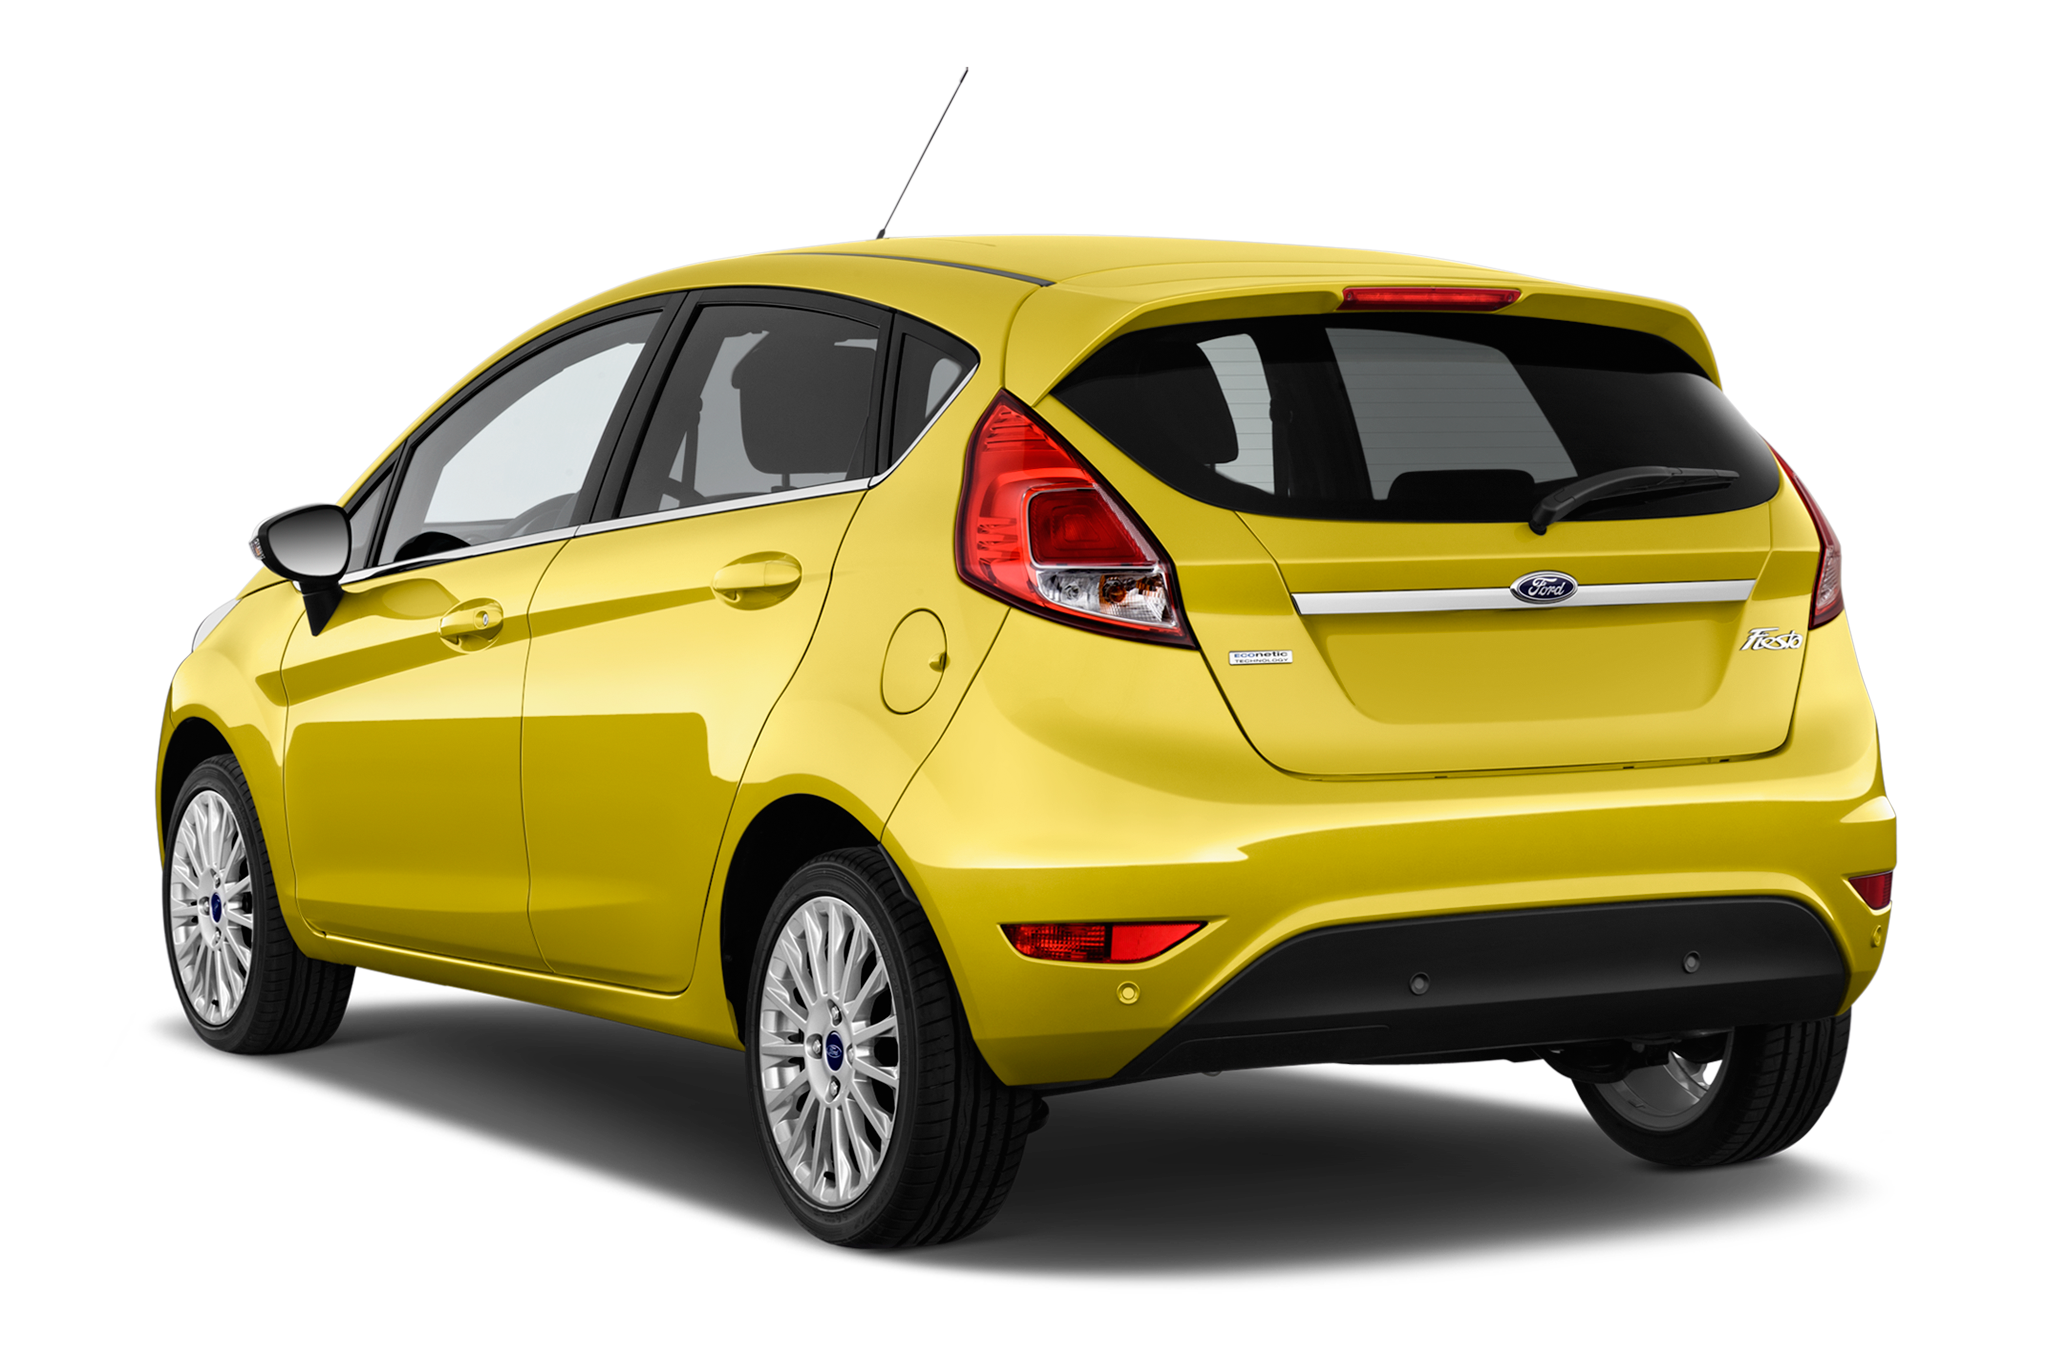 Back of car clipart jpg download Ford Fiesta PNG Clipart - Download free images in PNG jpg download